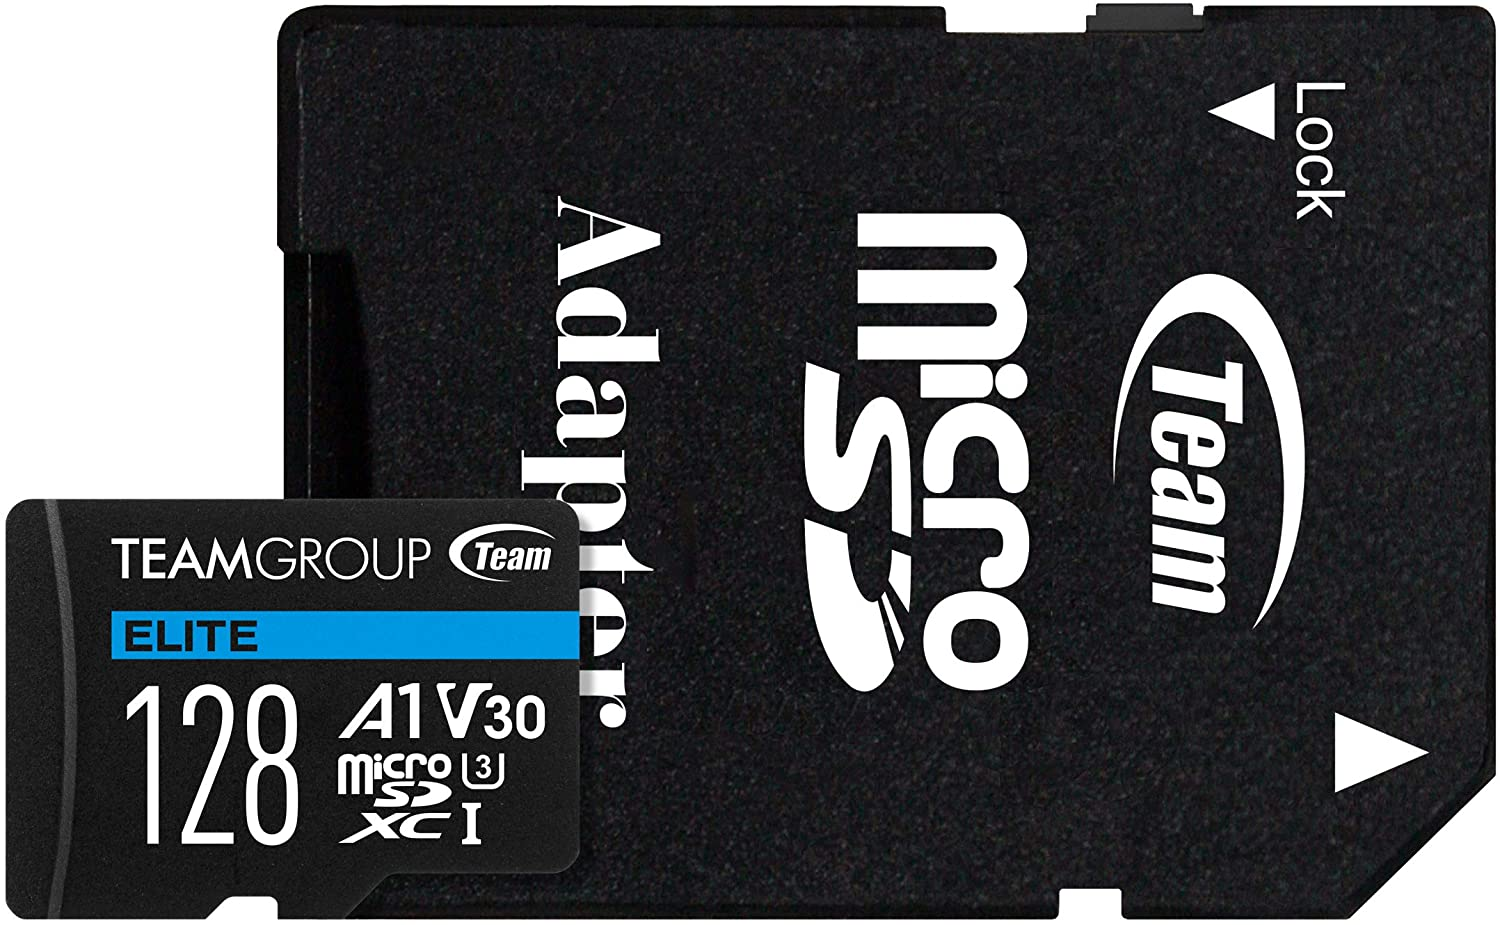 TEAMGROUP Elite A1 128GB microSDXC UHS-I U3 V30 A1 High Speed Flash Memory Card with Adapter for Phone, Android Mobile Device, 4K Shooting TEAUSDX128GIV30A103 (Read Speed up to 90MB/s)